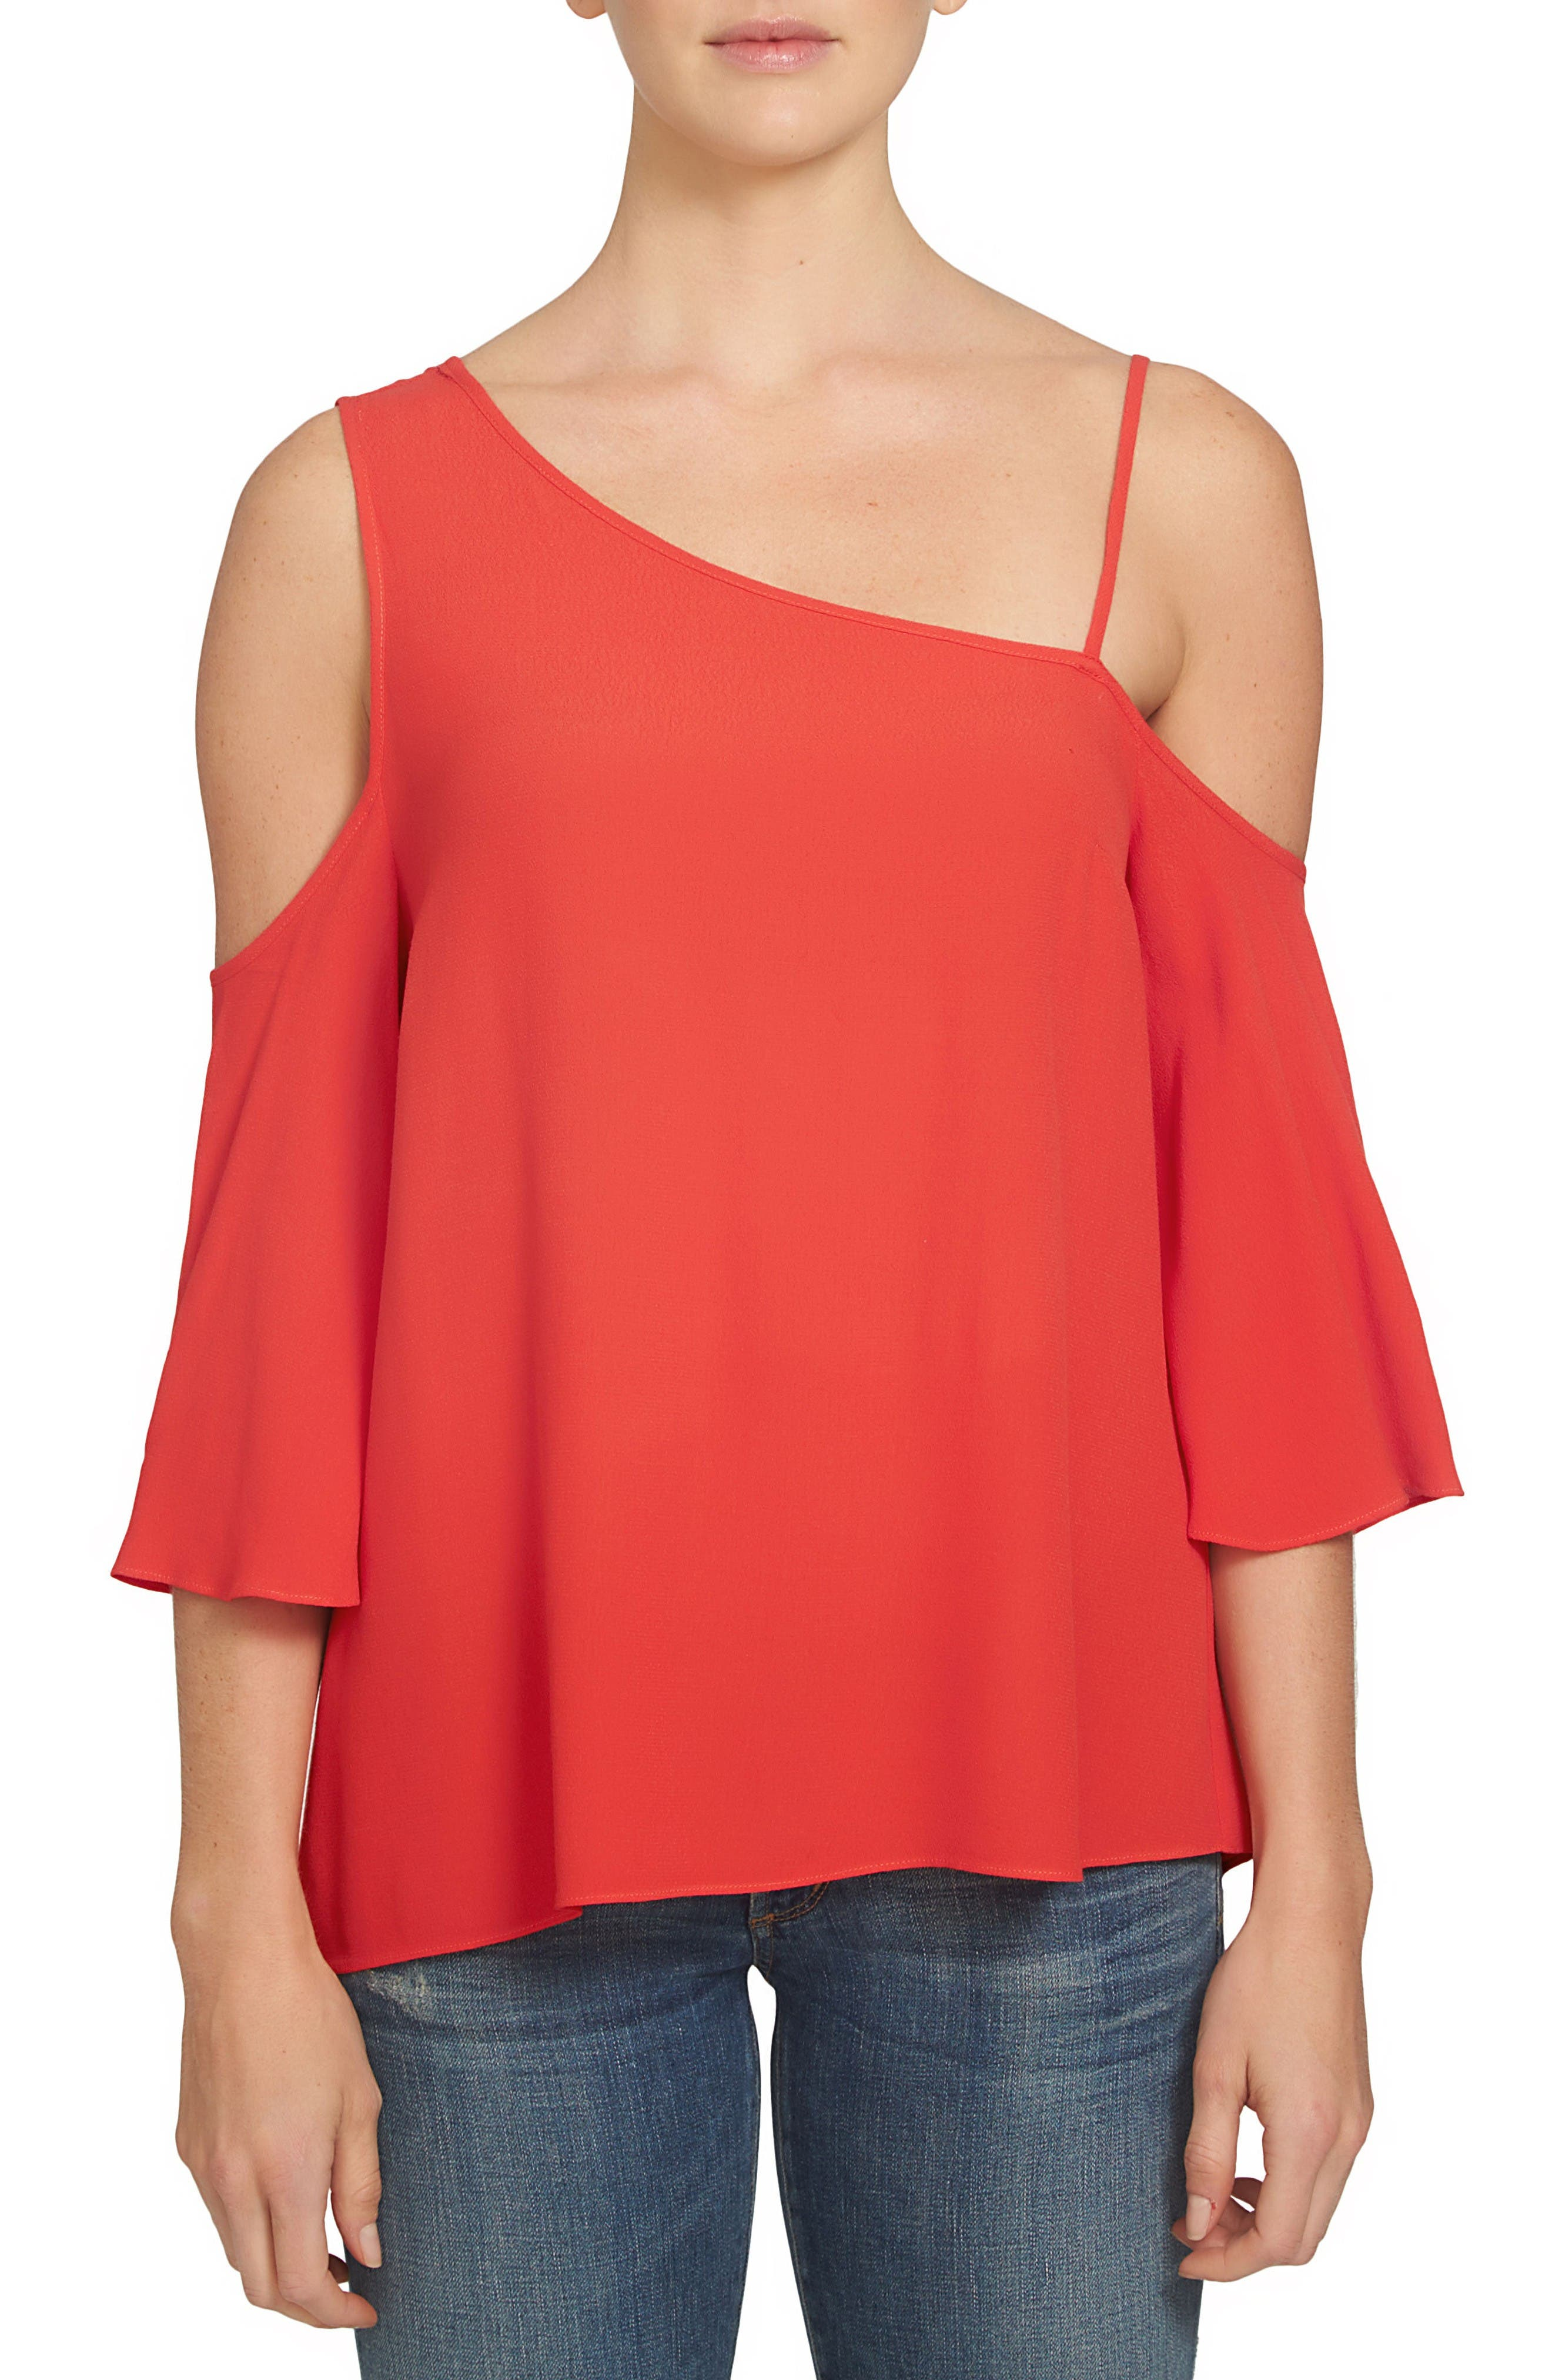 Main Image - 1.STATE One-Shoulder Top